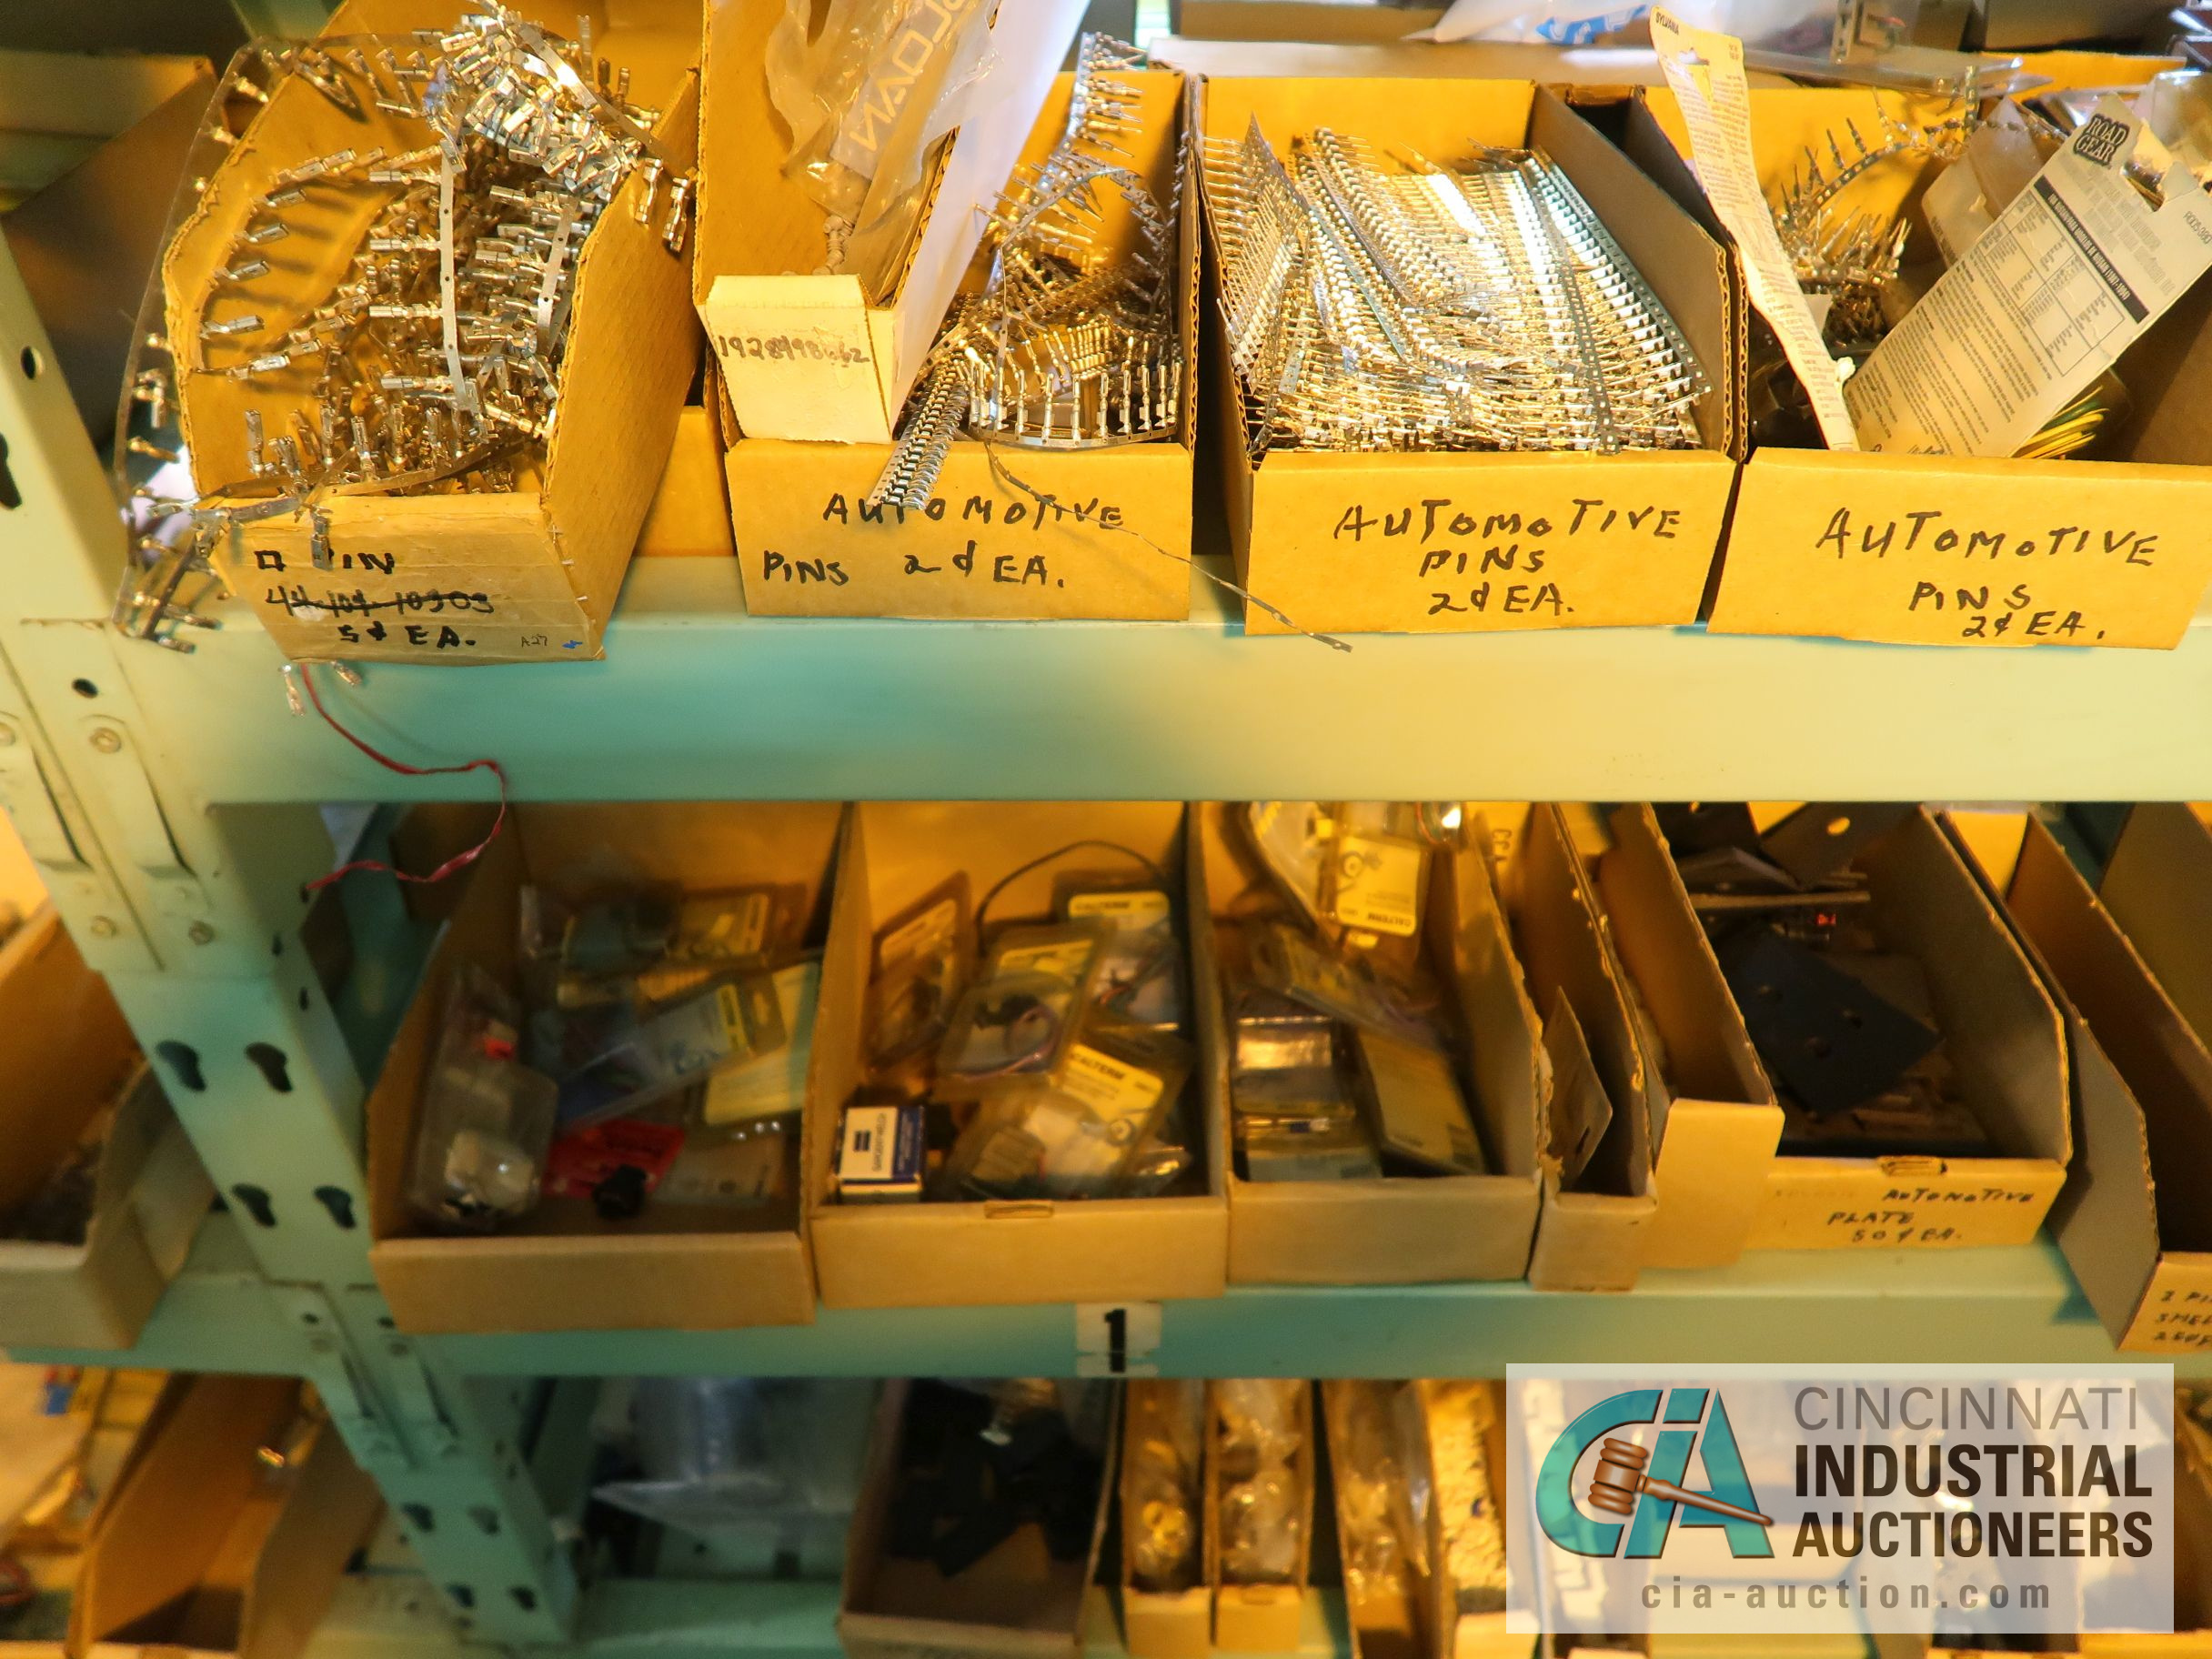 CONTENTS OF (5) RACKS INCLUDING MISCELLANEOUS AUTOMOTIVE PARTS, LIGHTS, FILTERS, ENGINE PARTS, RIMS, - Image 13 of 29